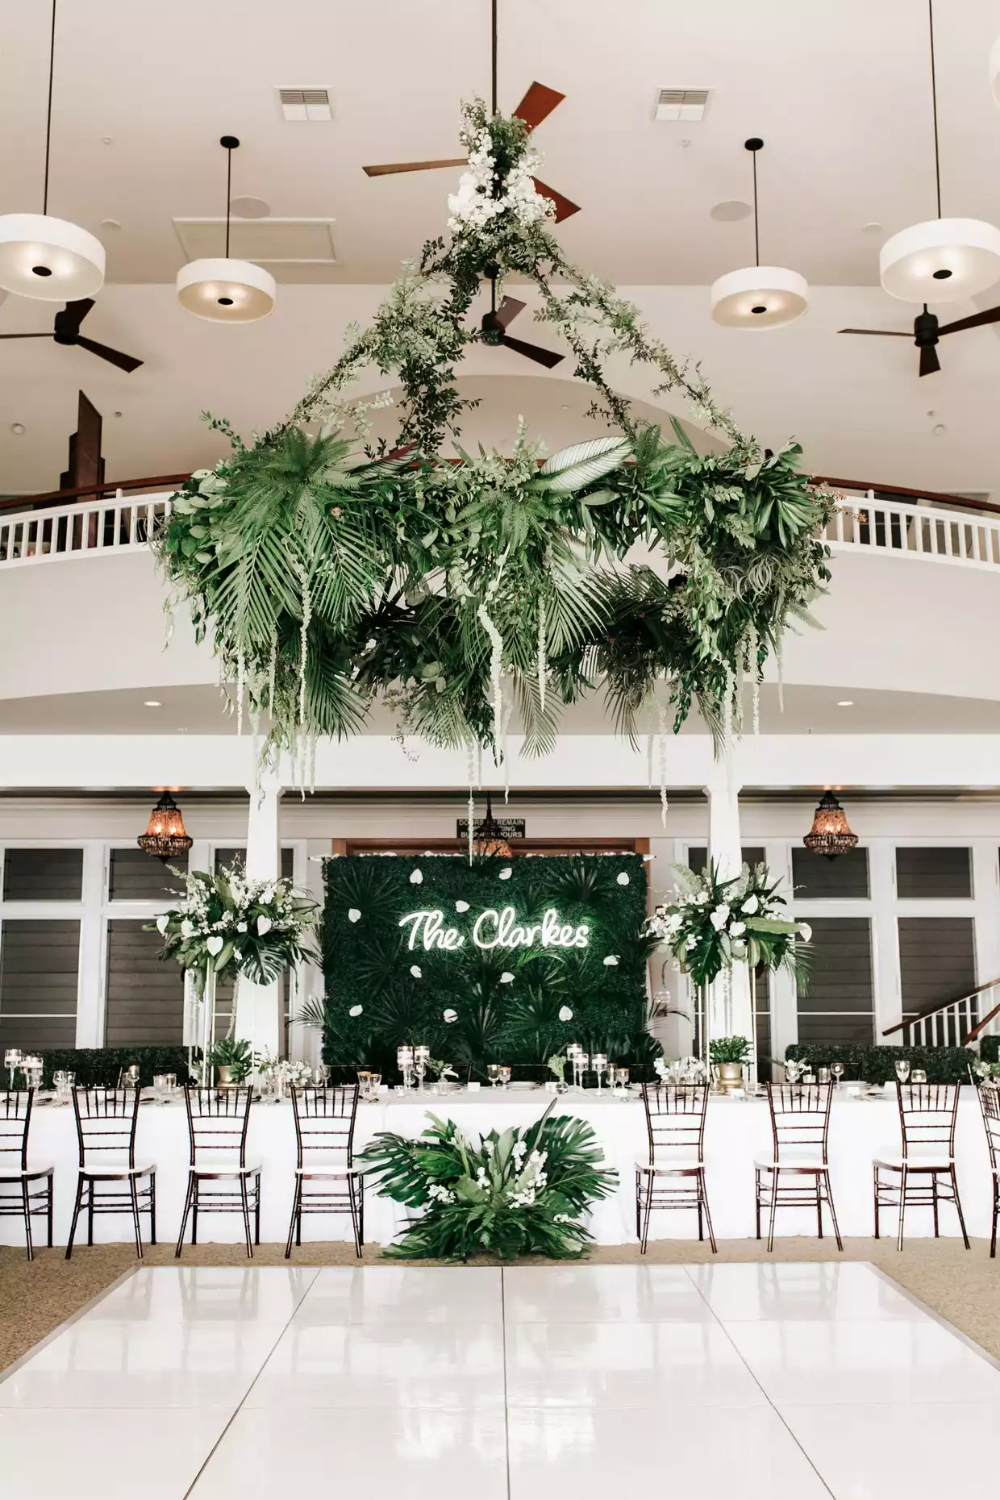 Pin on 2021 Wedding Trends